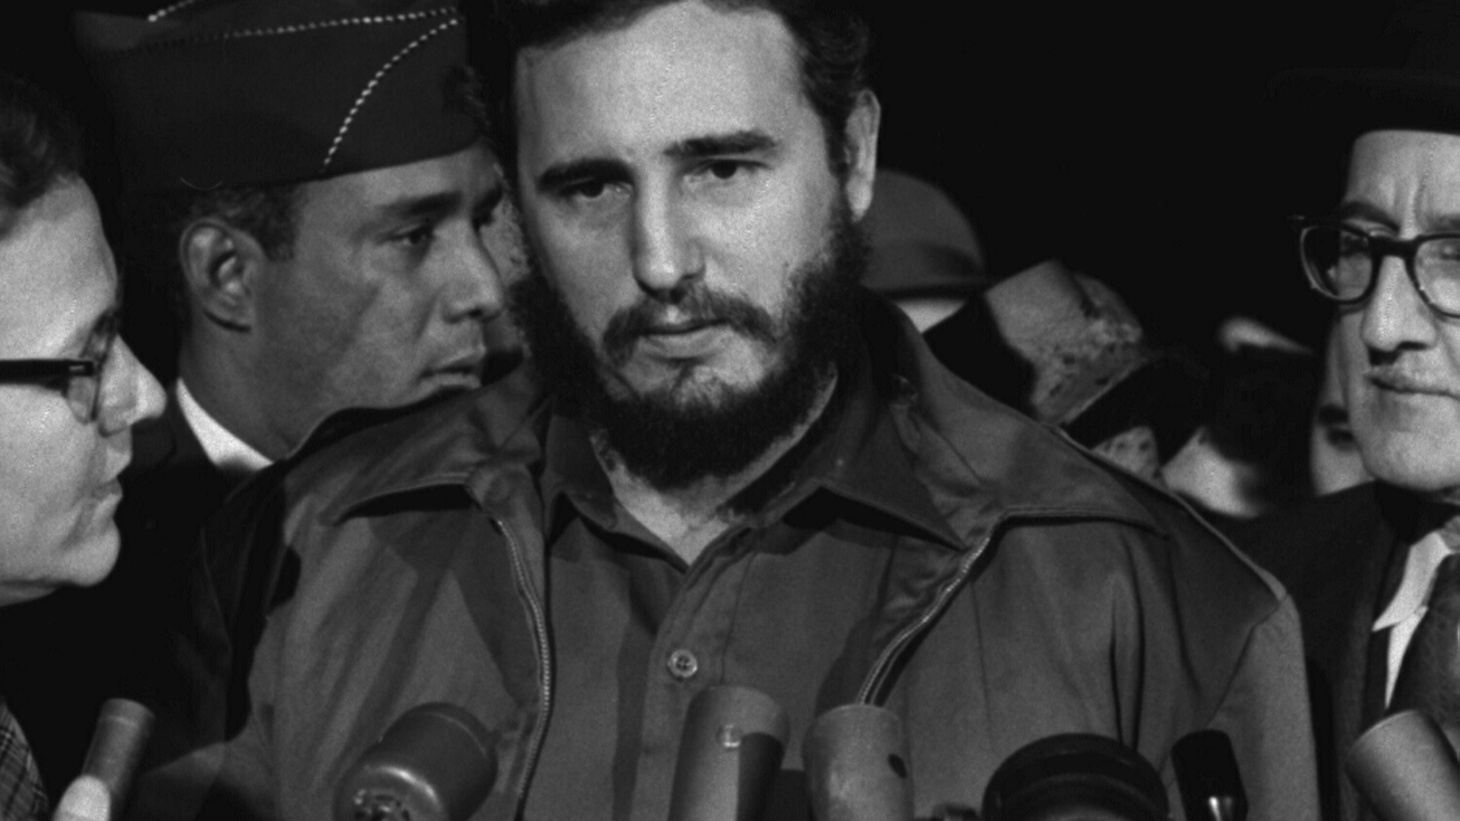 As the US and Cuba remember the late Fidel Castro, all eyes are on his surviving brother, Raul — and on America's next President, Donald Trump. Will the relaxation of tensions continue, or will hardliners reverse course?